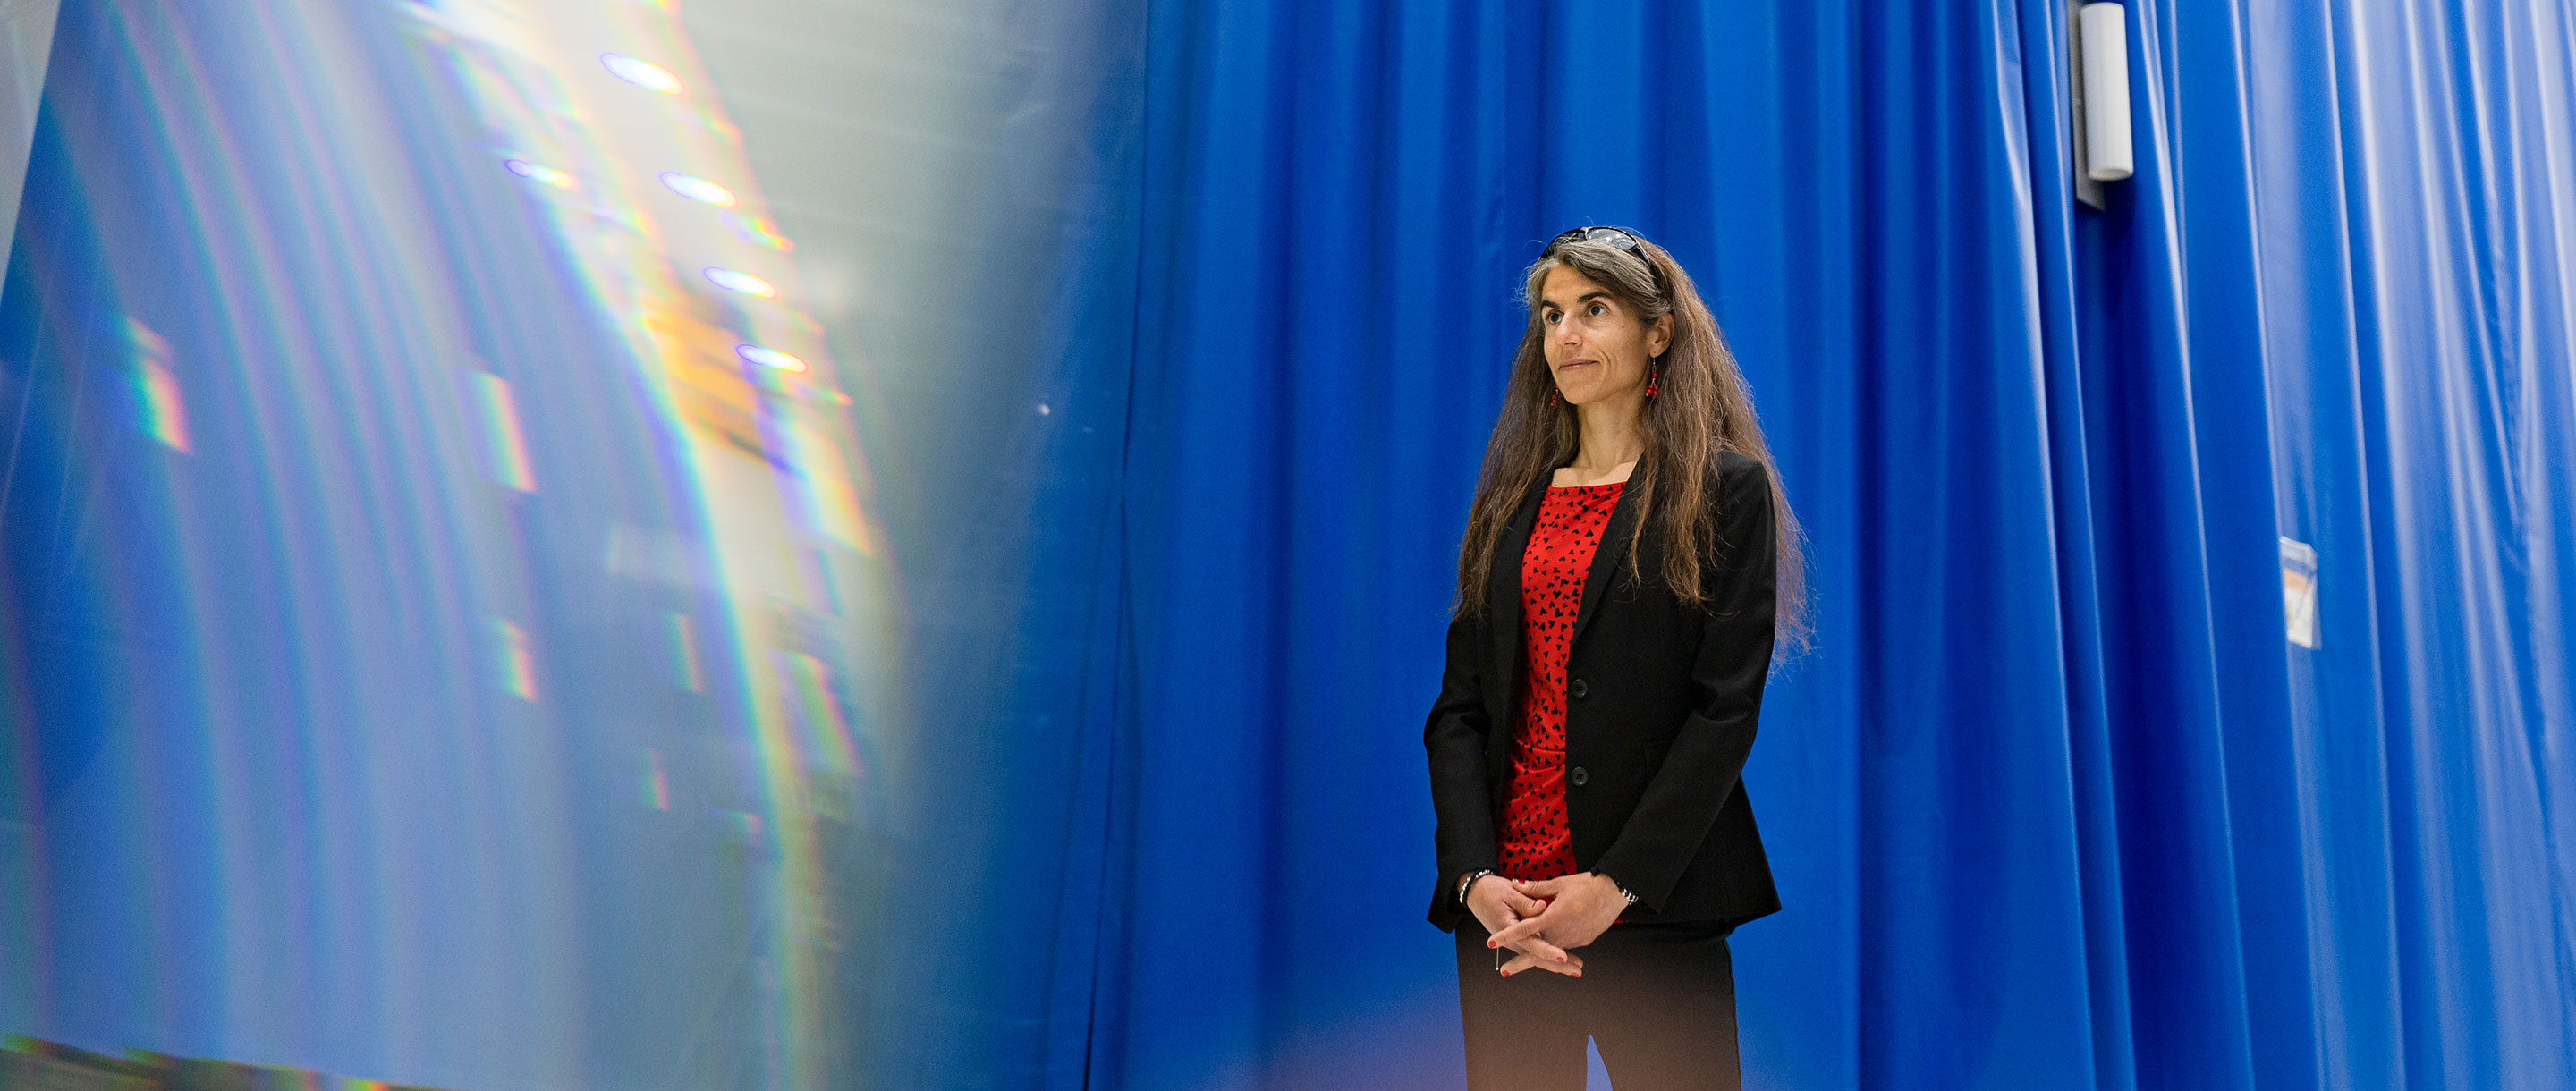 Woman in front of a blue curtain.